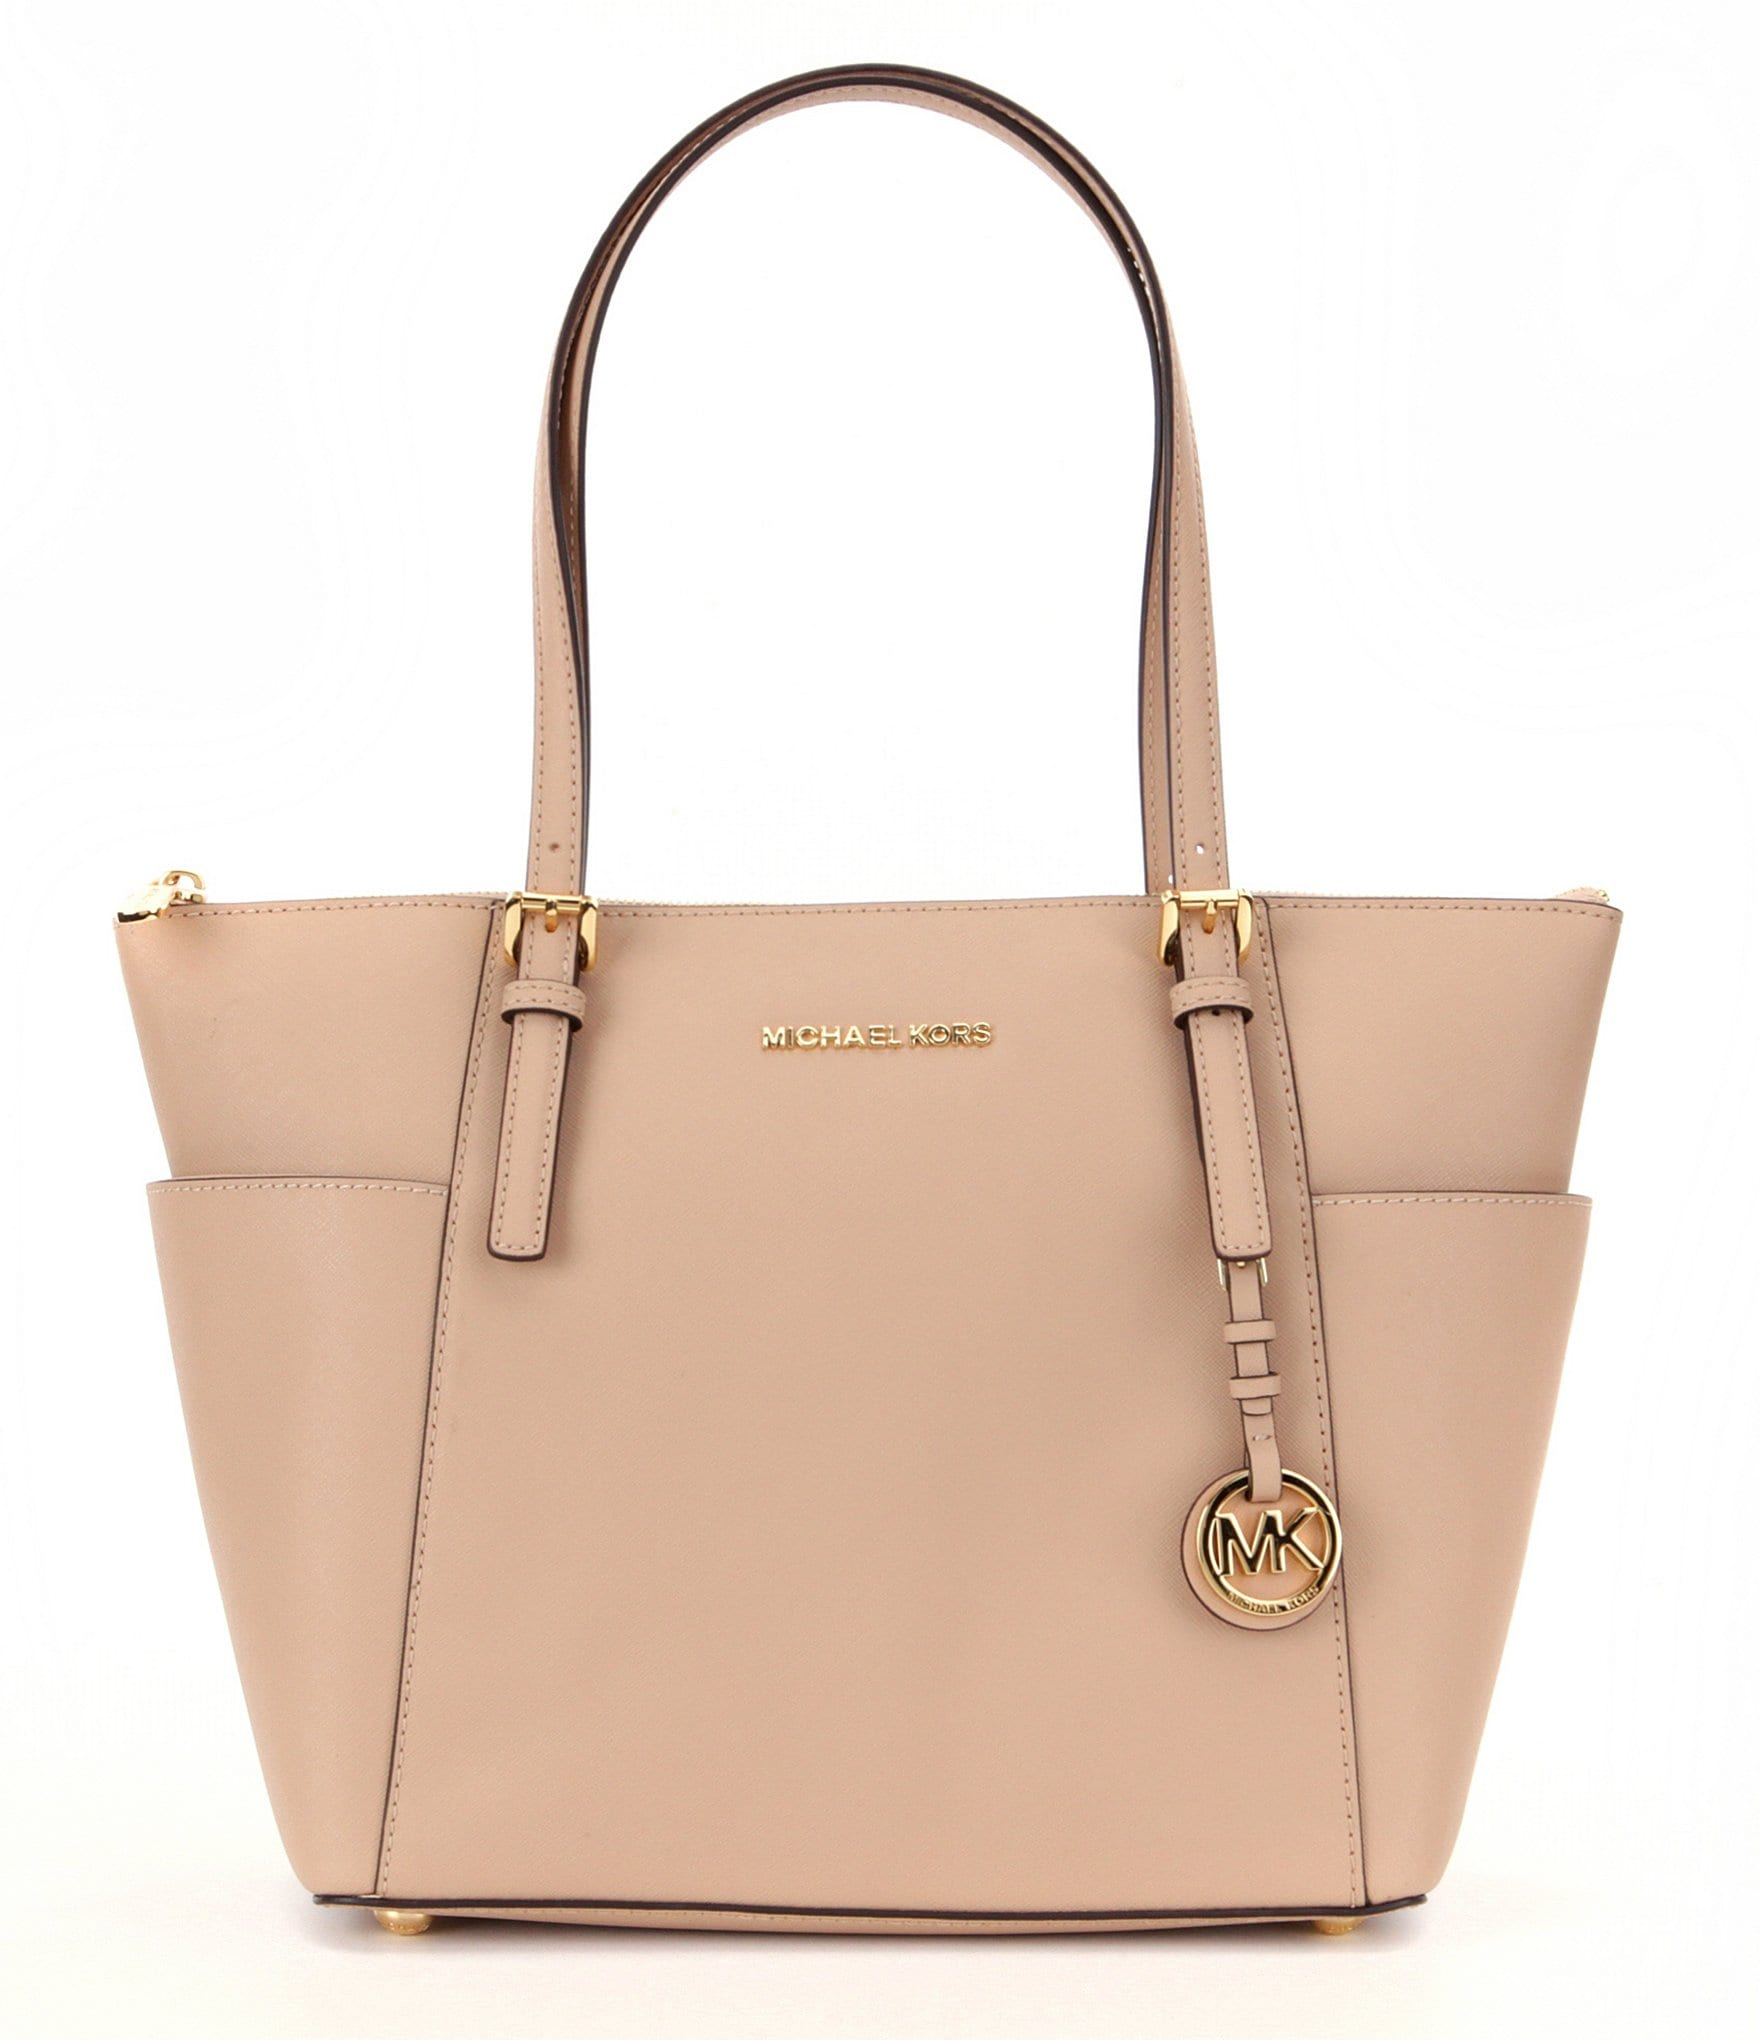 075a39f521e4 Buy michael kors computer tote > OFF73% Discounted